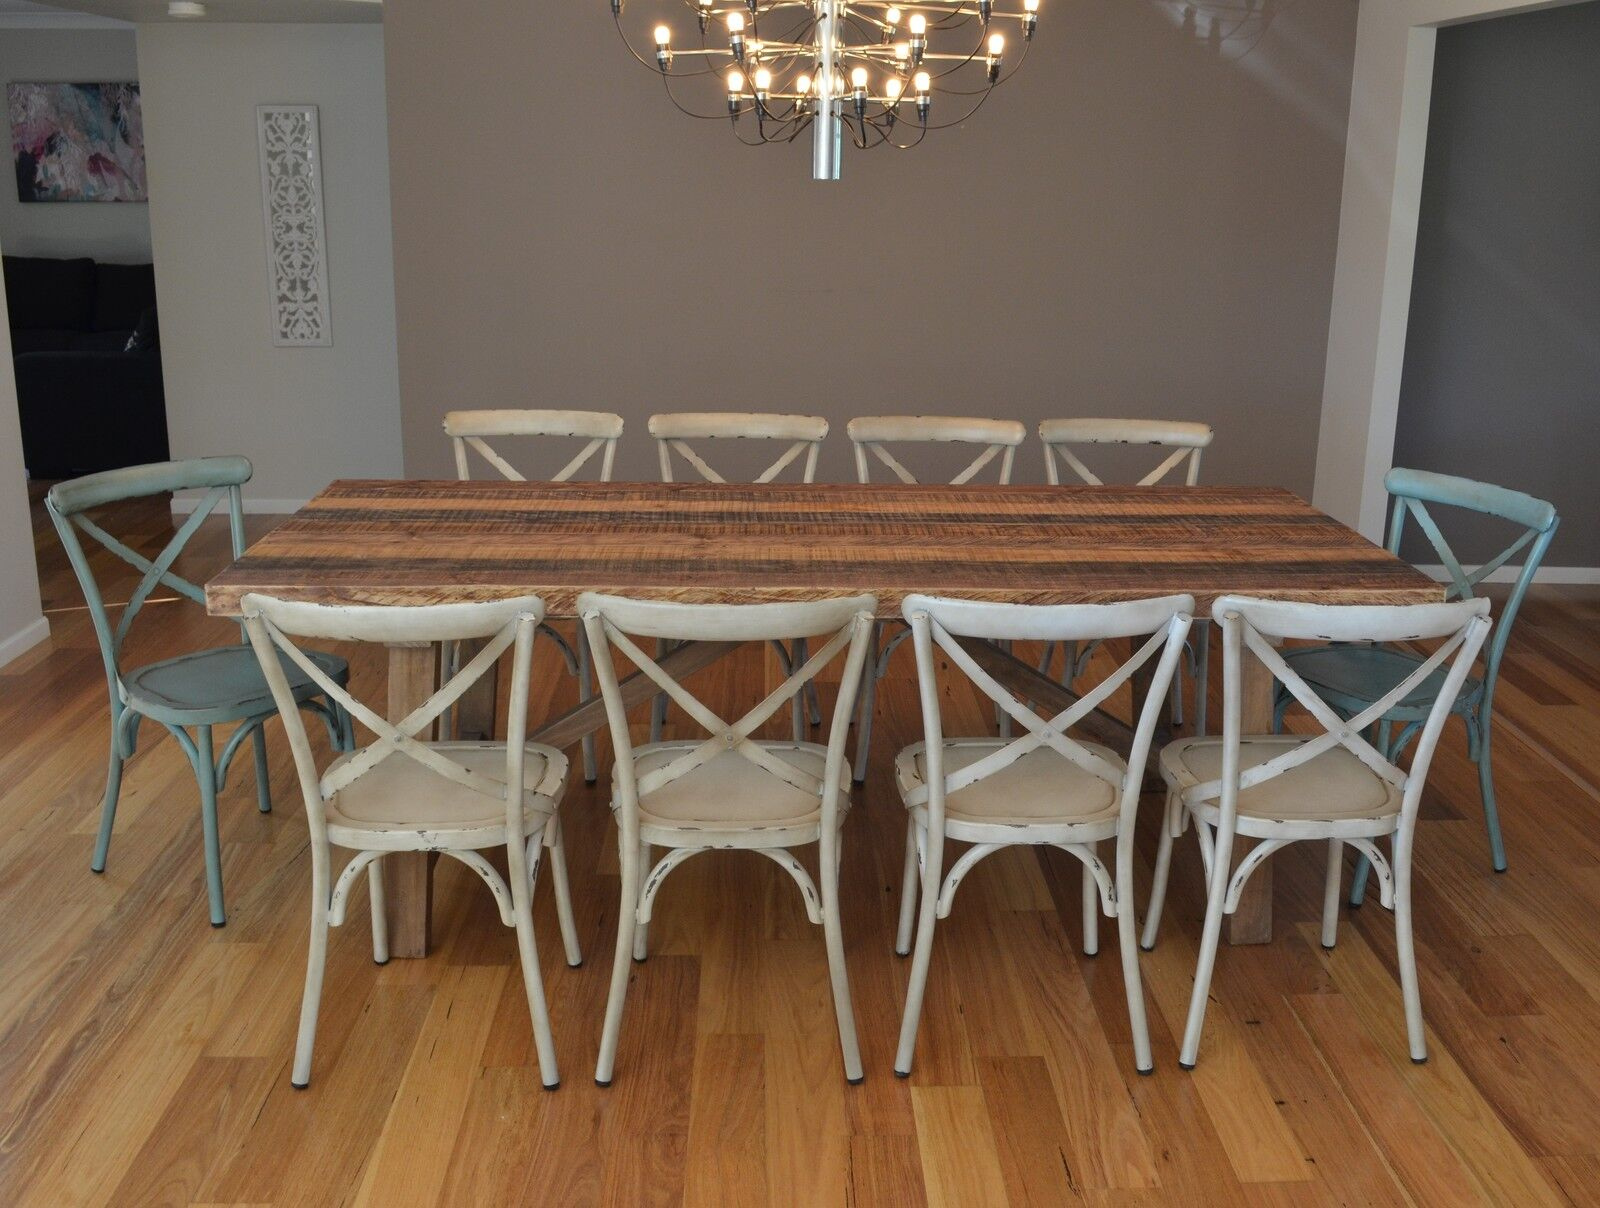 rustic metal dining chairs cheap chair covers australia new large 10 seater recycled timber table setting